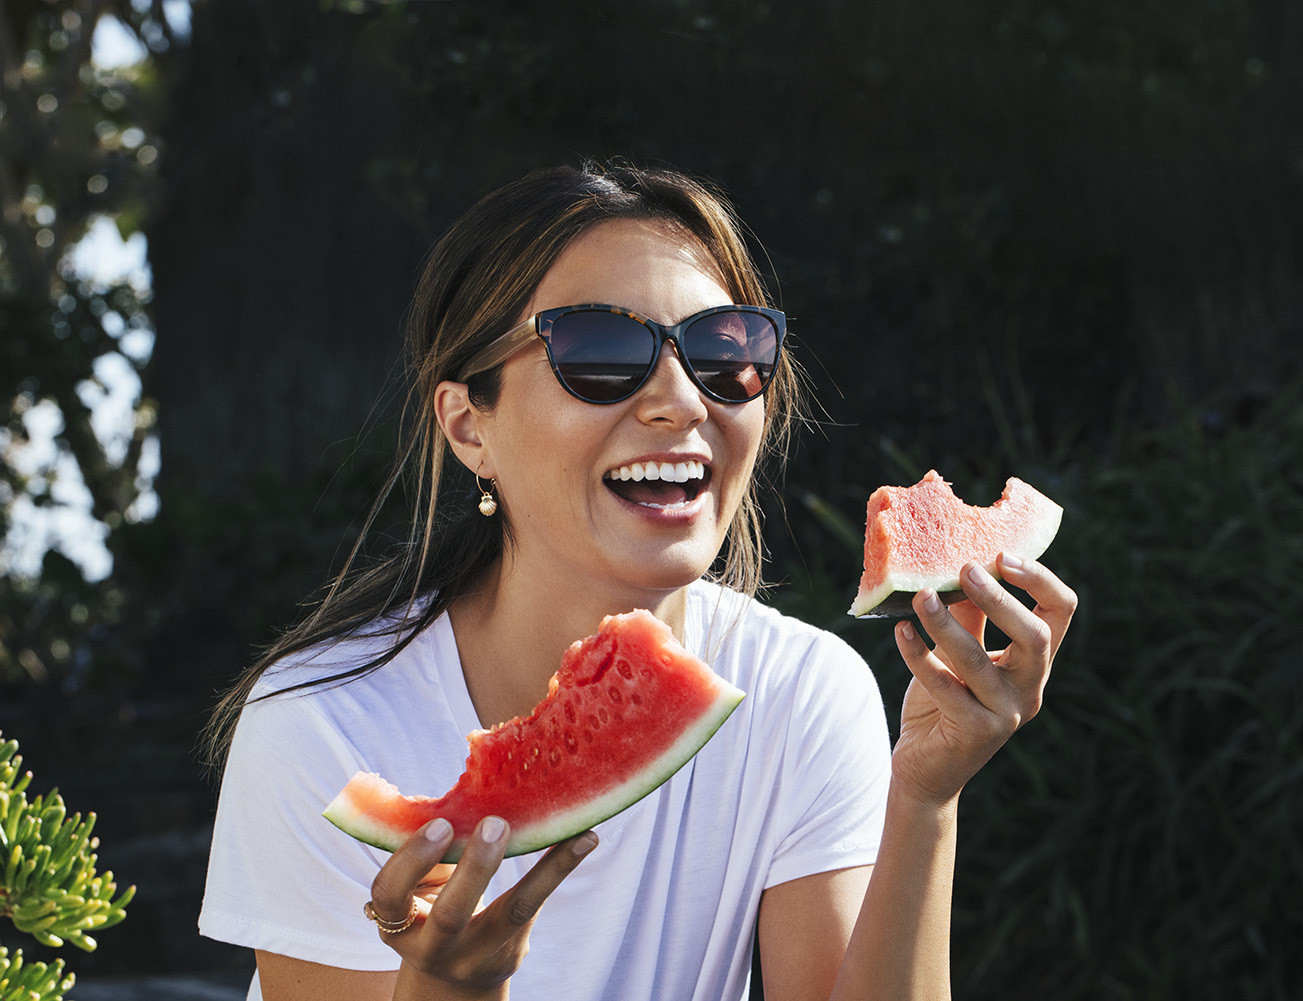 Woman really enjoying watermelon wearing sunglasses